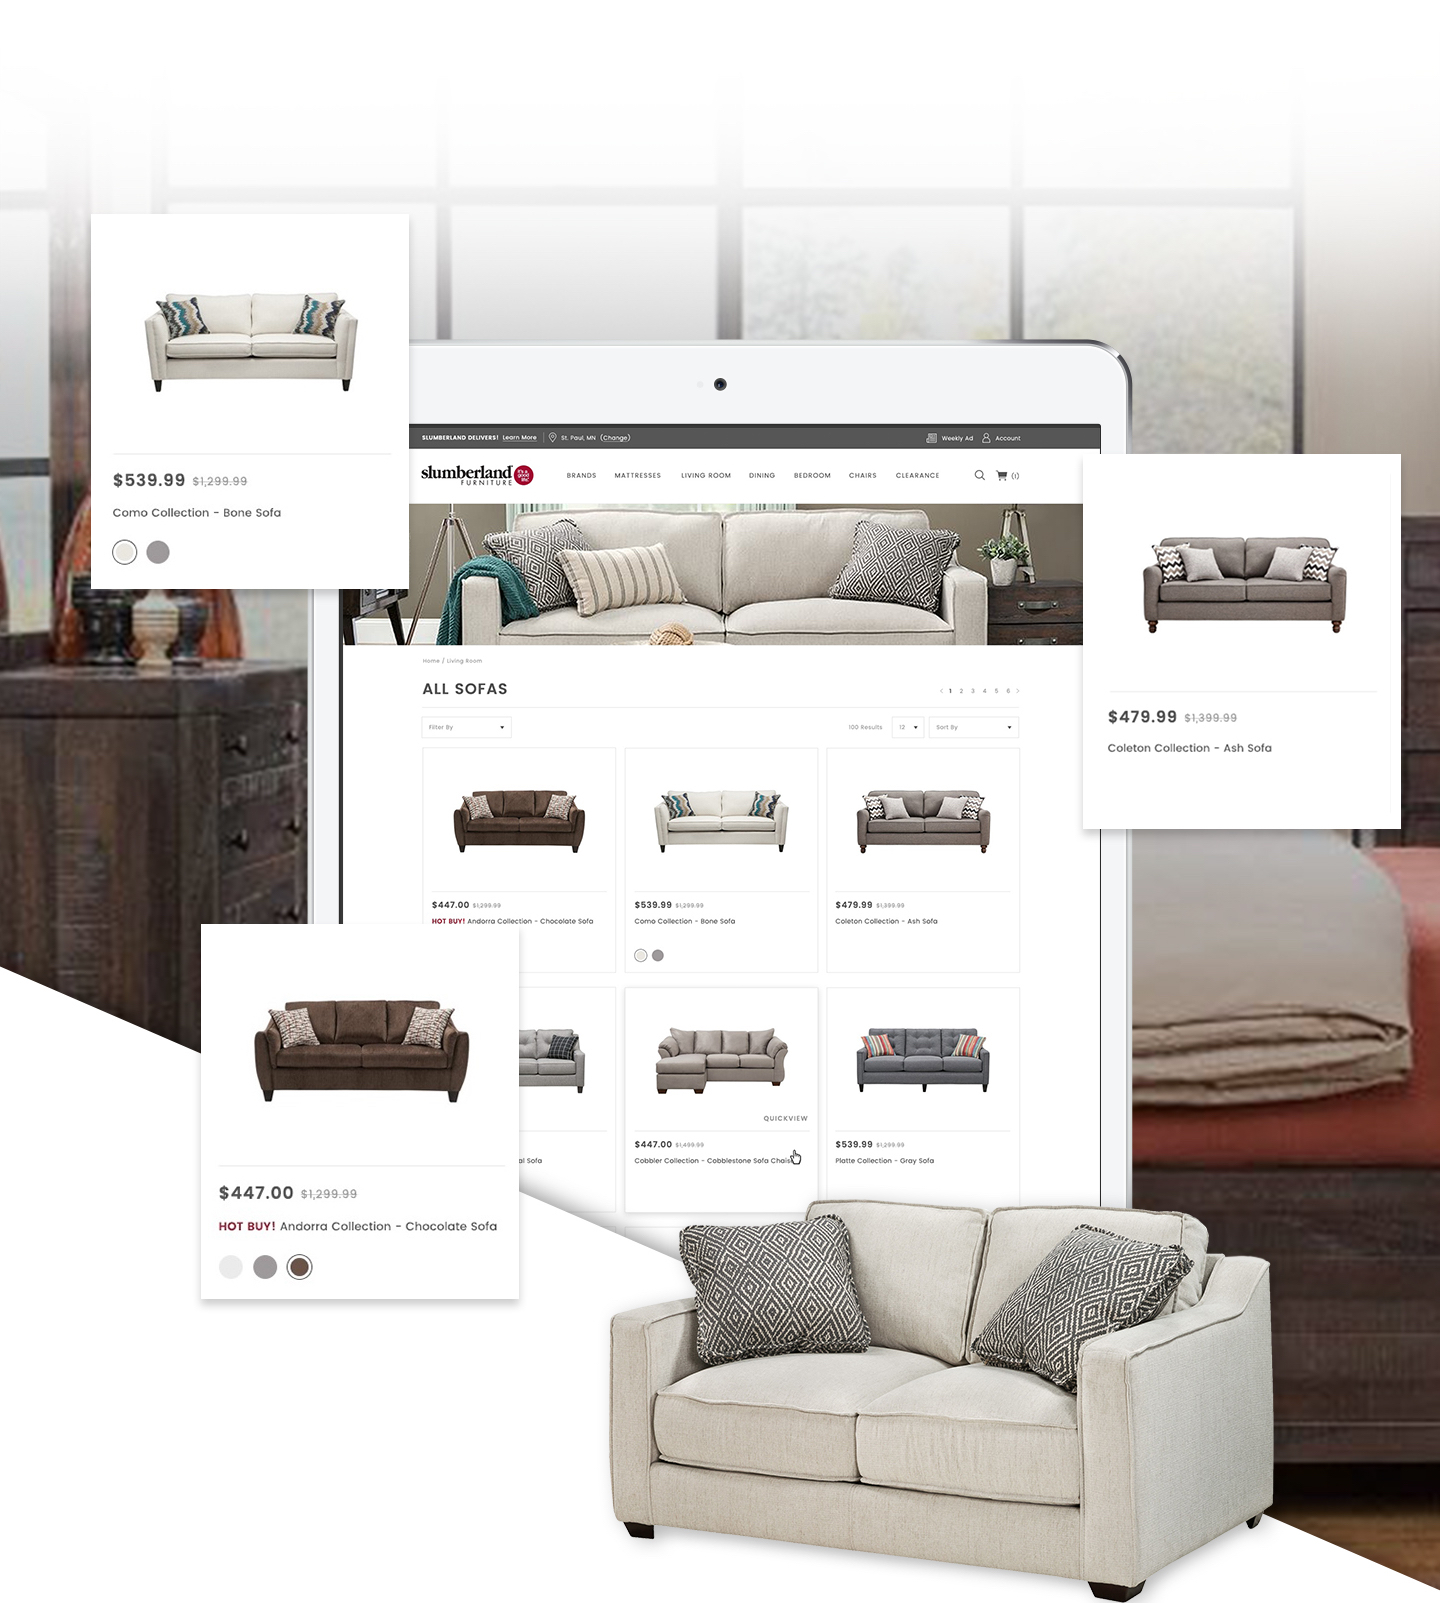 Furnishing A Premier Digital Experience